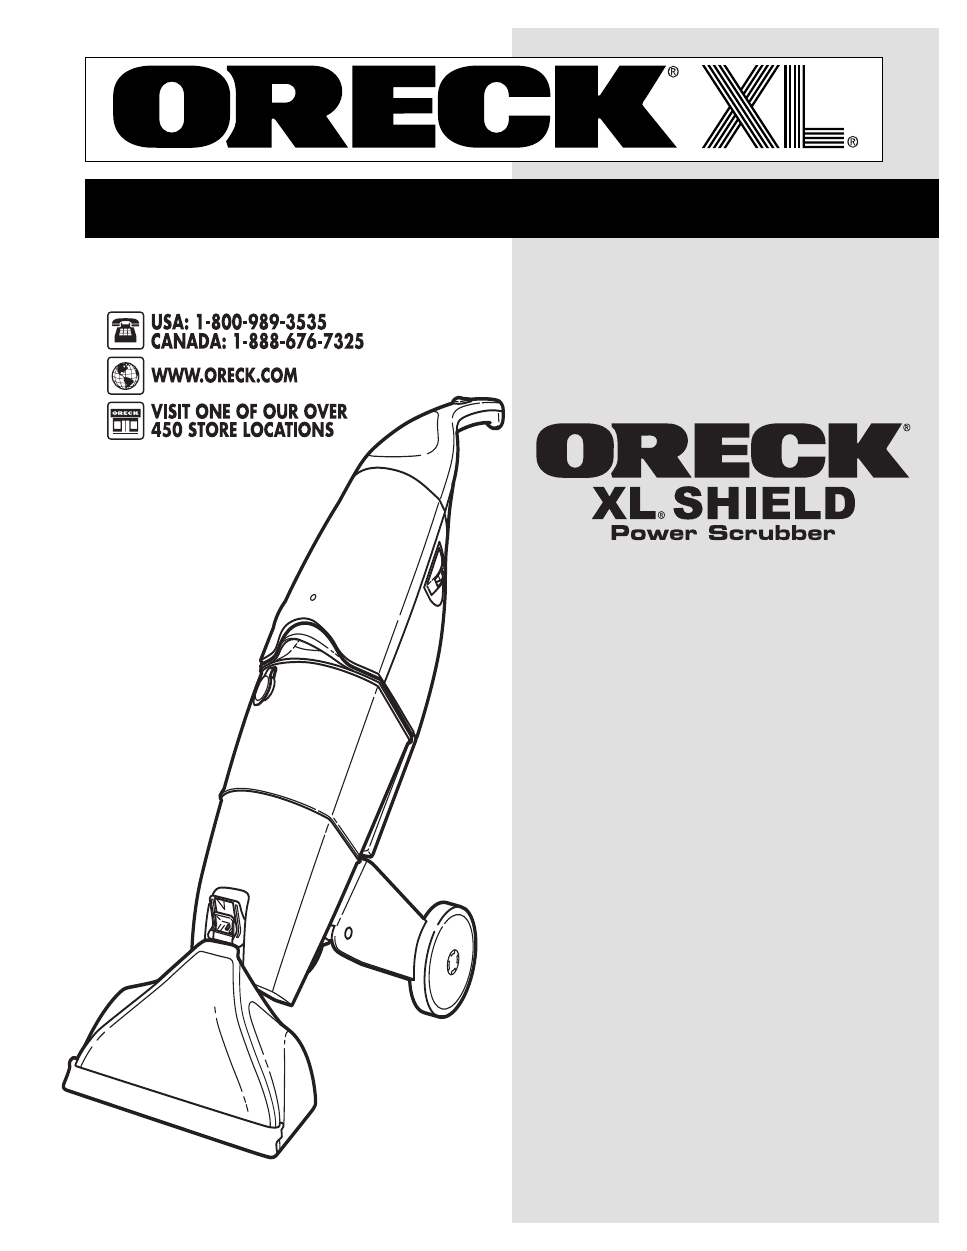 Oreck Vacuum Owners Manual Data Wiring Diagrams \u2022 Wiring Diagram Oreck  Xl3610hh